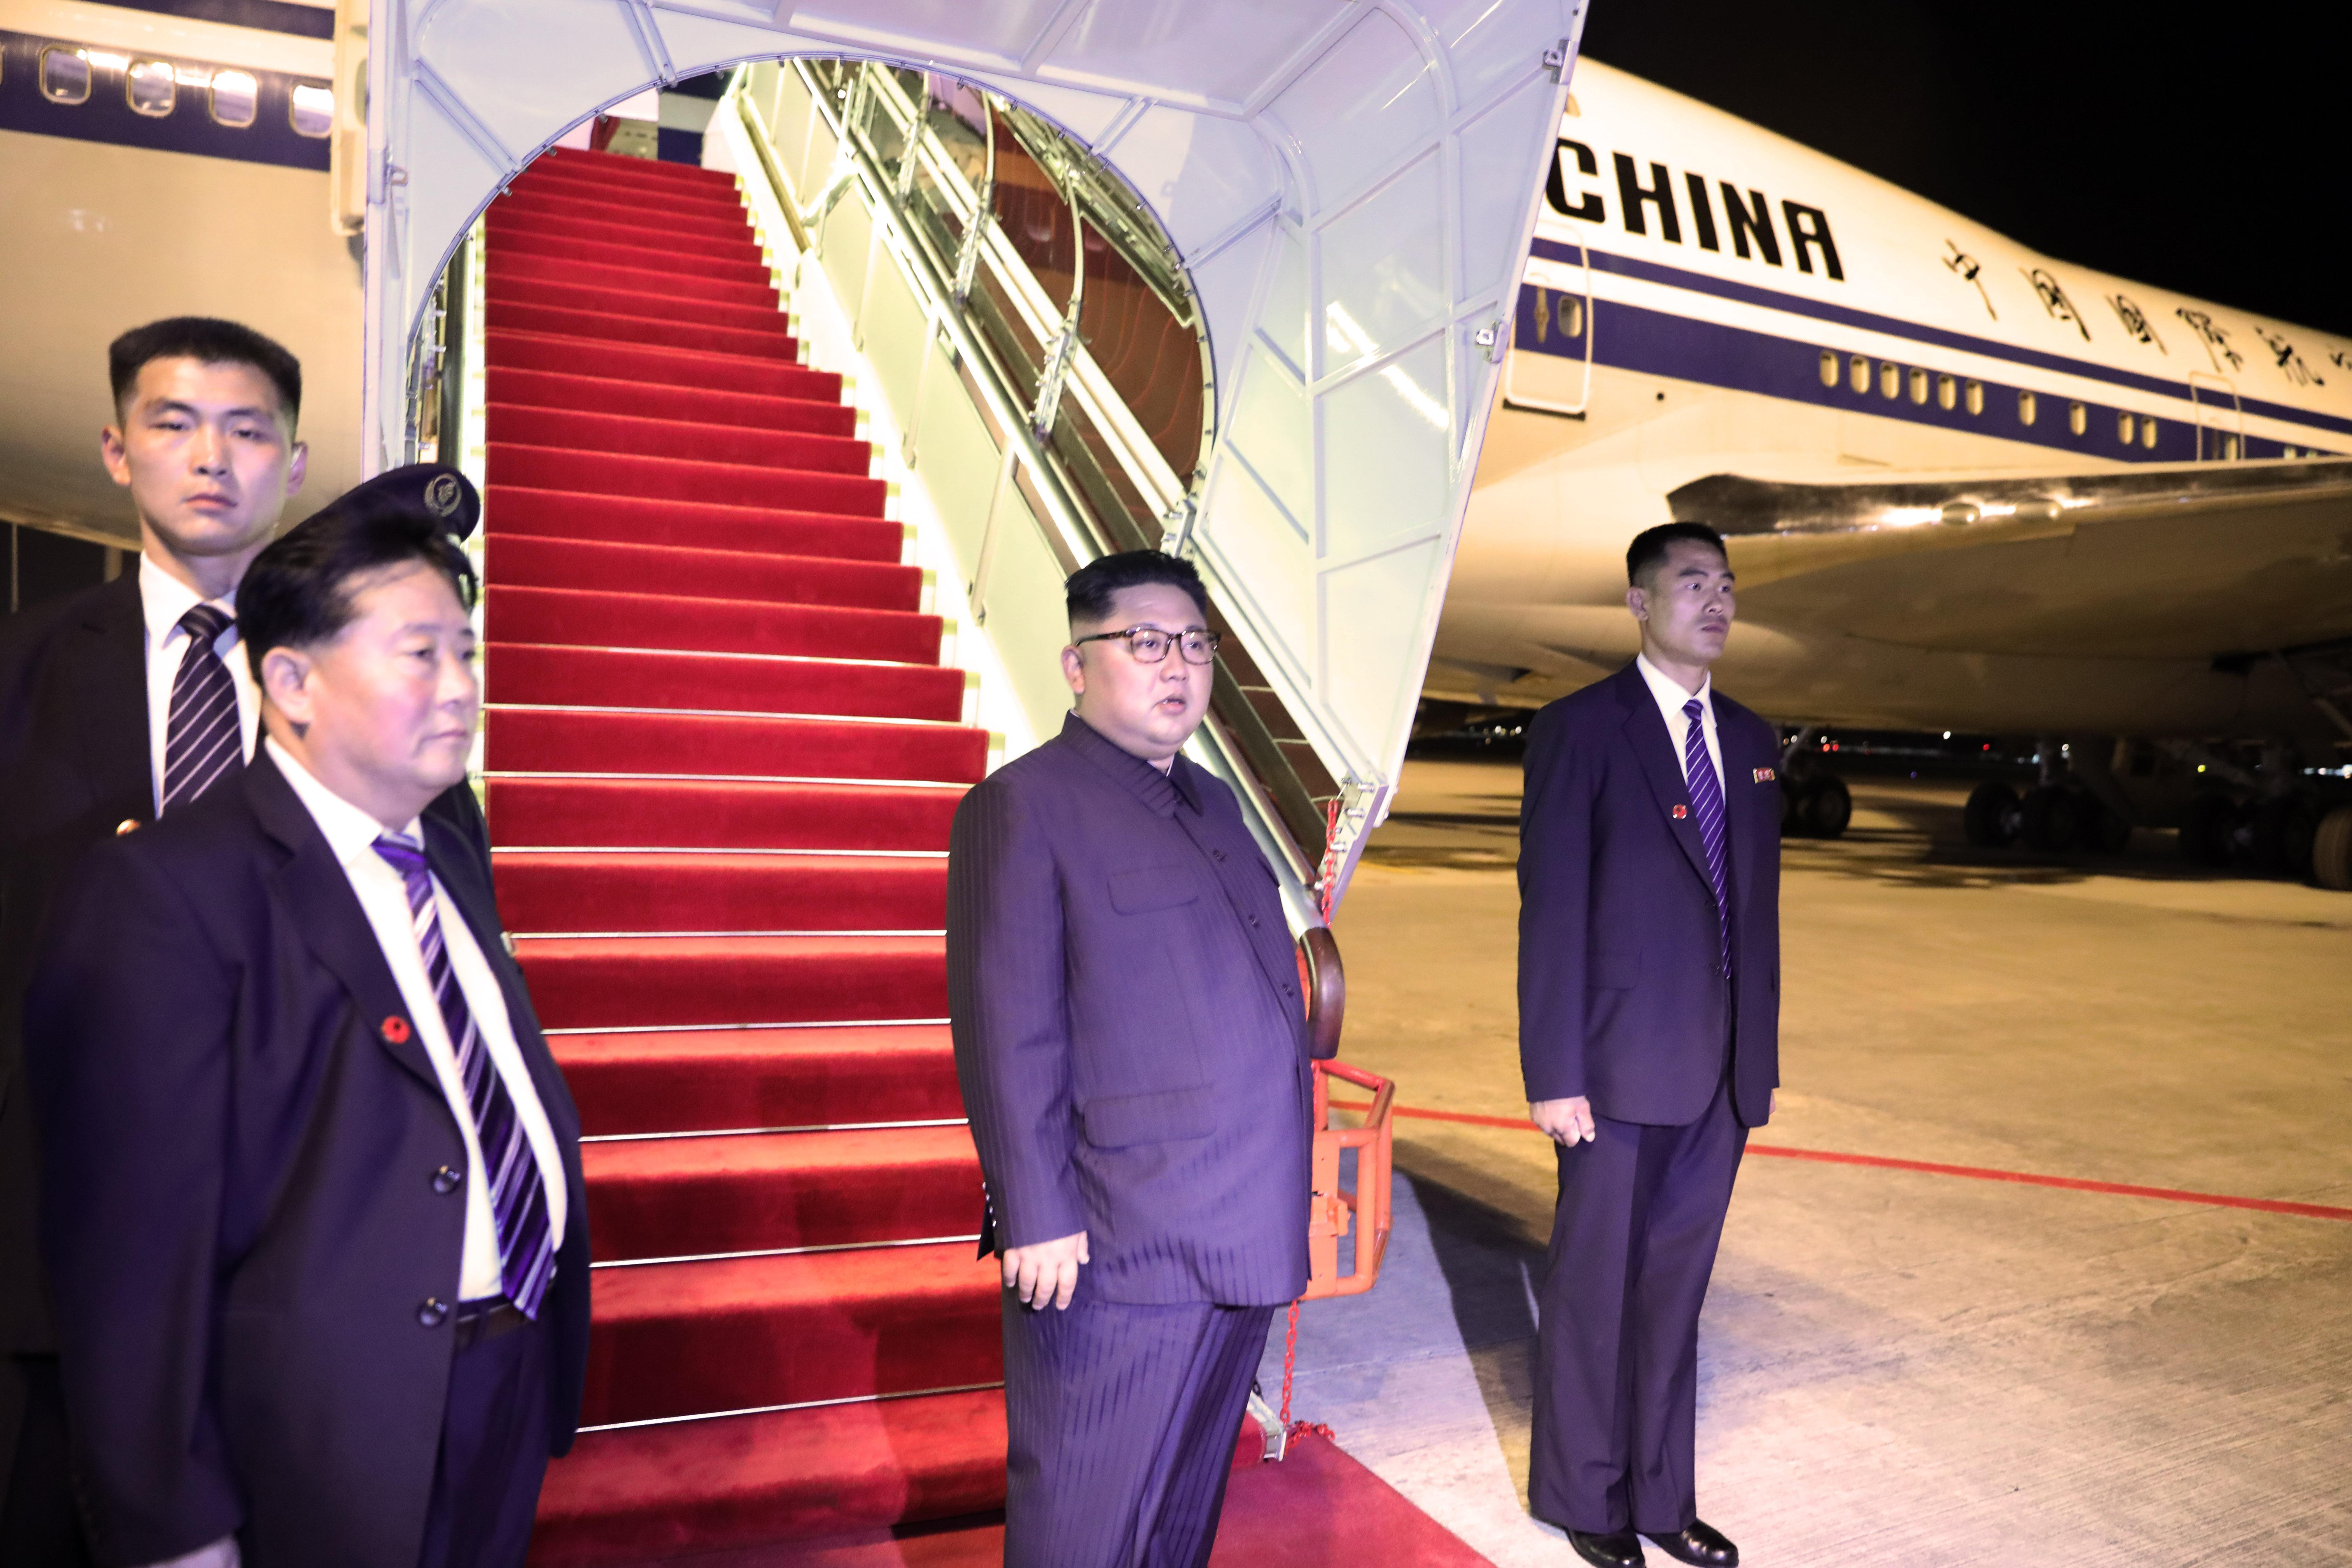 <p>North Korean leader Kim Jong-un departs Singapore from Changi Airport on June 12, 2018, in Singapore. (Photo: Ministry of Communications and Information Singapore via Getty Images) </p>